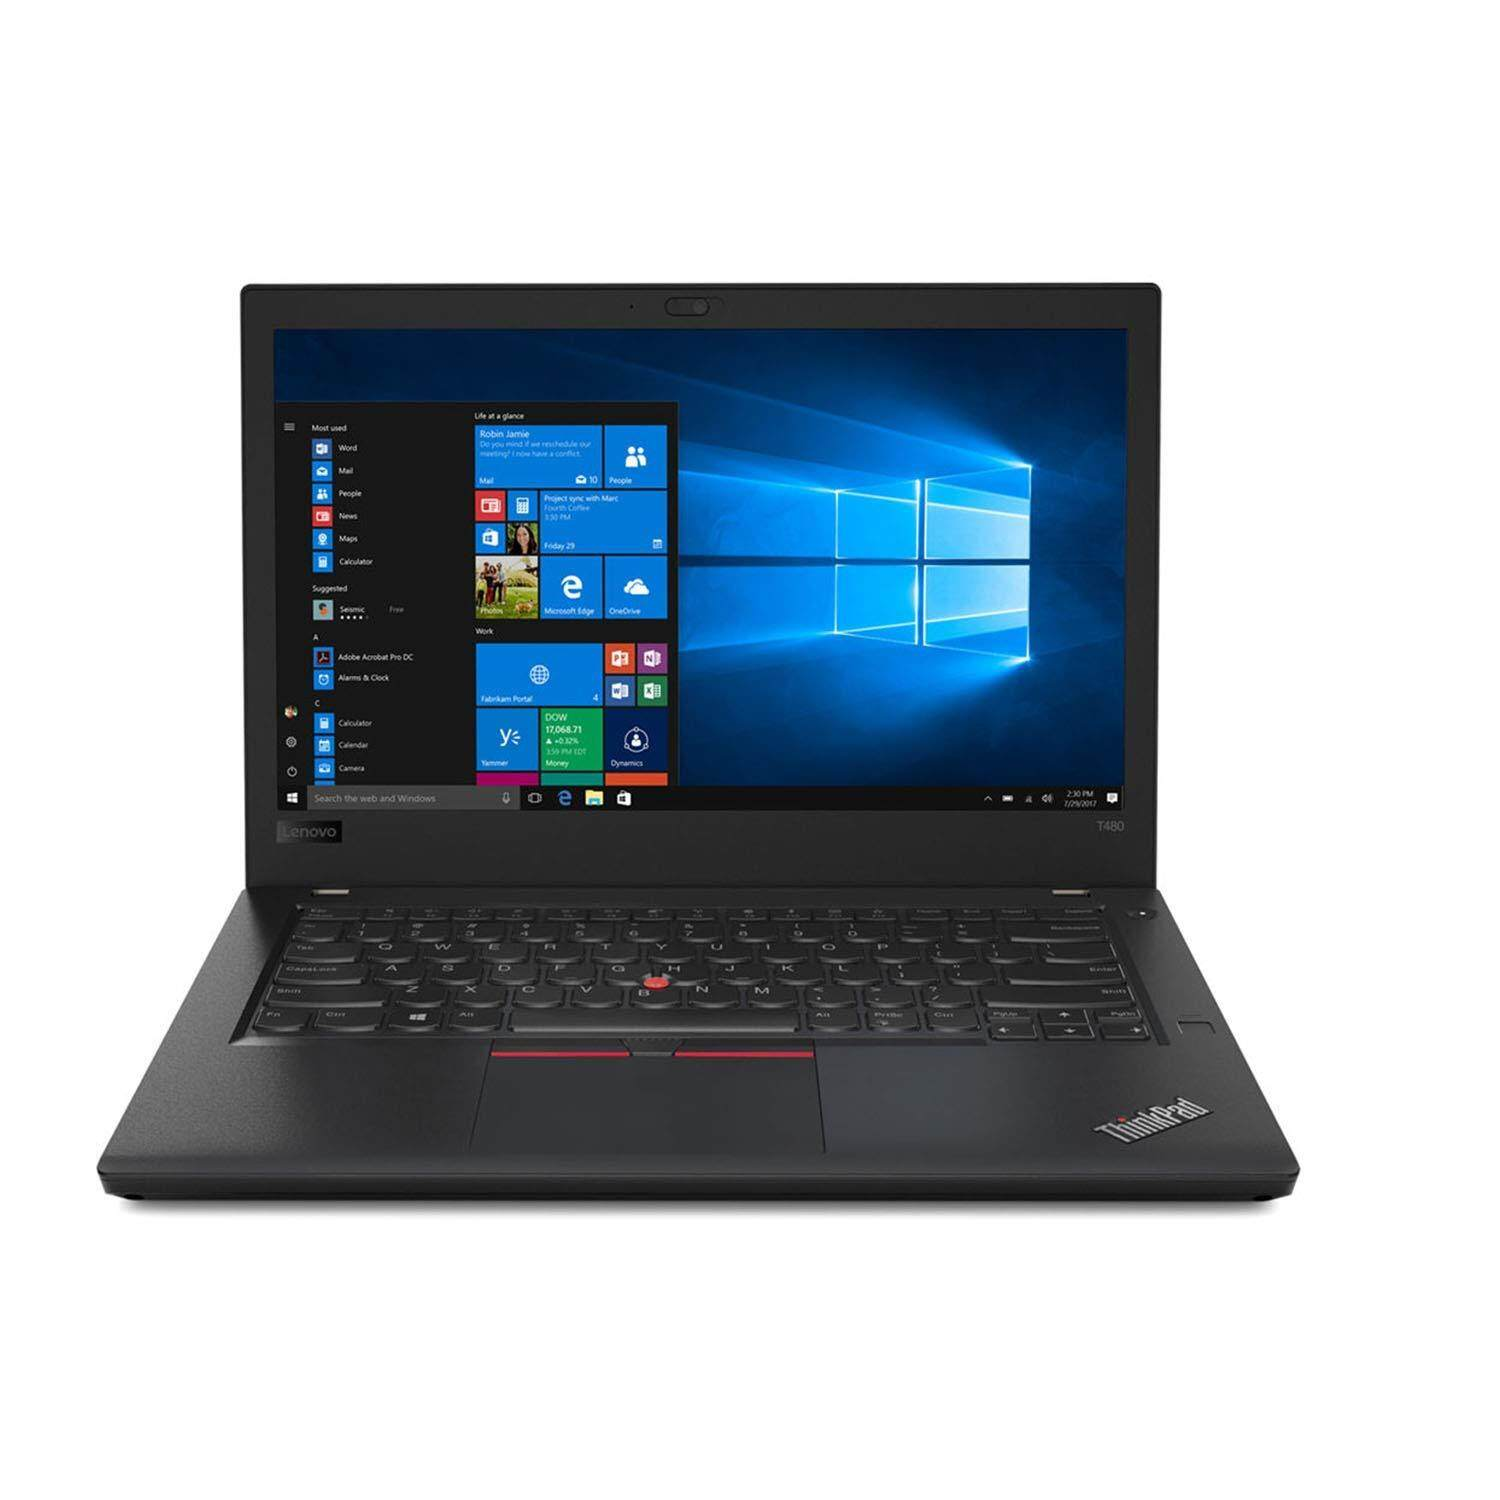 Lenovo ThinkPad T480 20L5S00L00 14 inch Laptop/Notebook (i7-8550U, 8GB, 128GB, 1TB, NV MX150, W10P) Malaysia